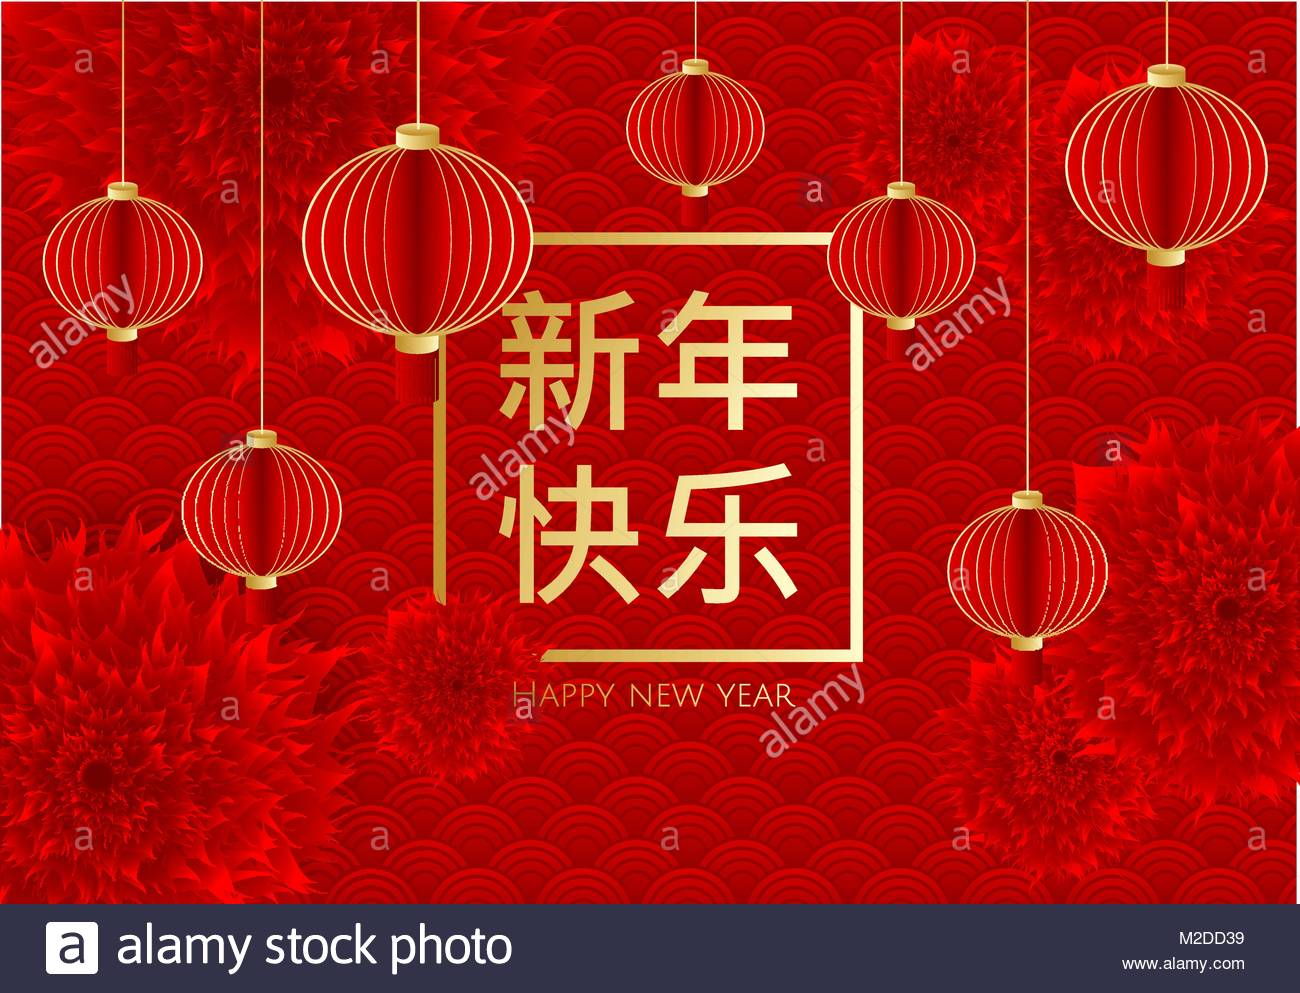 Happy chinese new year greeting card design for your greetings card happy chinese new year greeting card design for your greetings card flyers invitation posters brochure banners calendar kristyandbryce Image collections